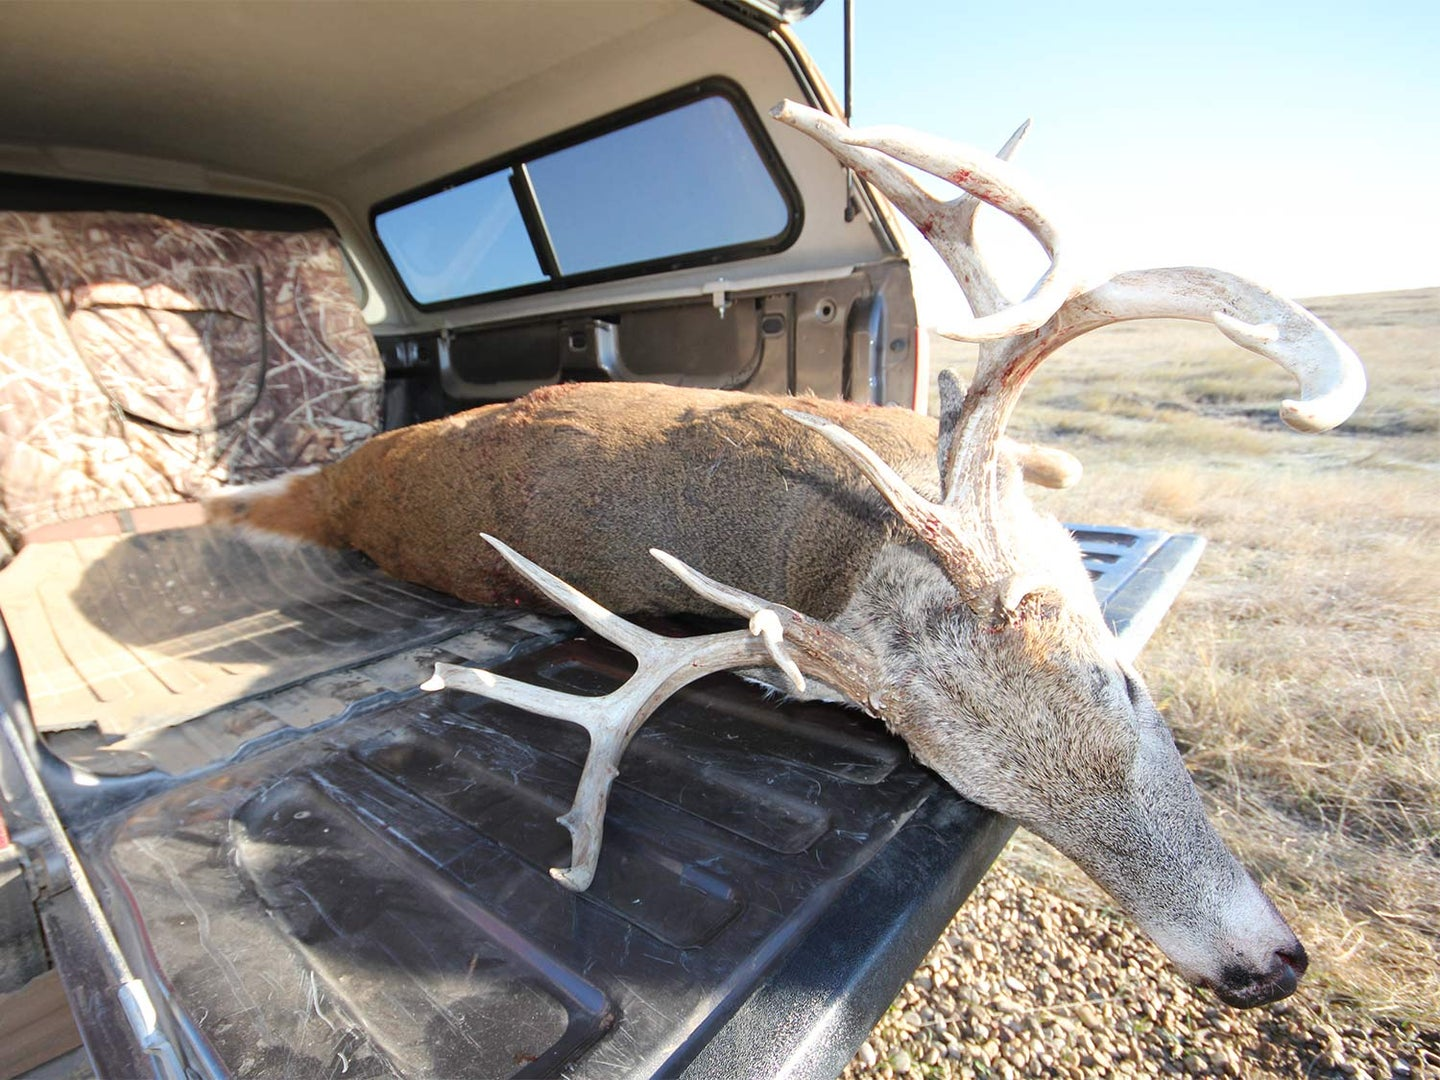 A dead whitetail deer lays in the bed of a hunting truck after a successful hunt.